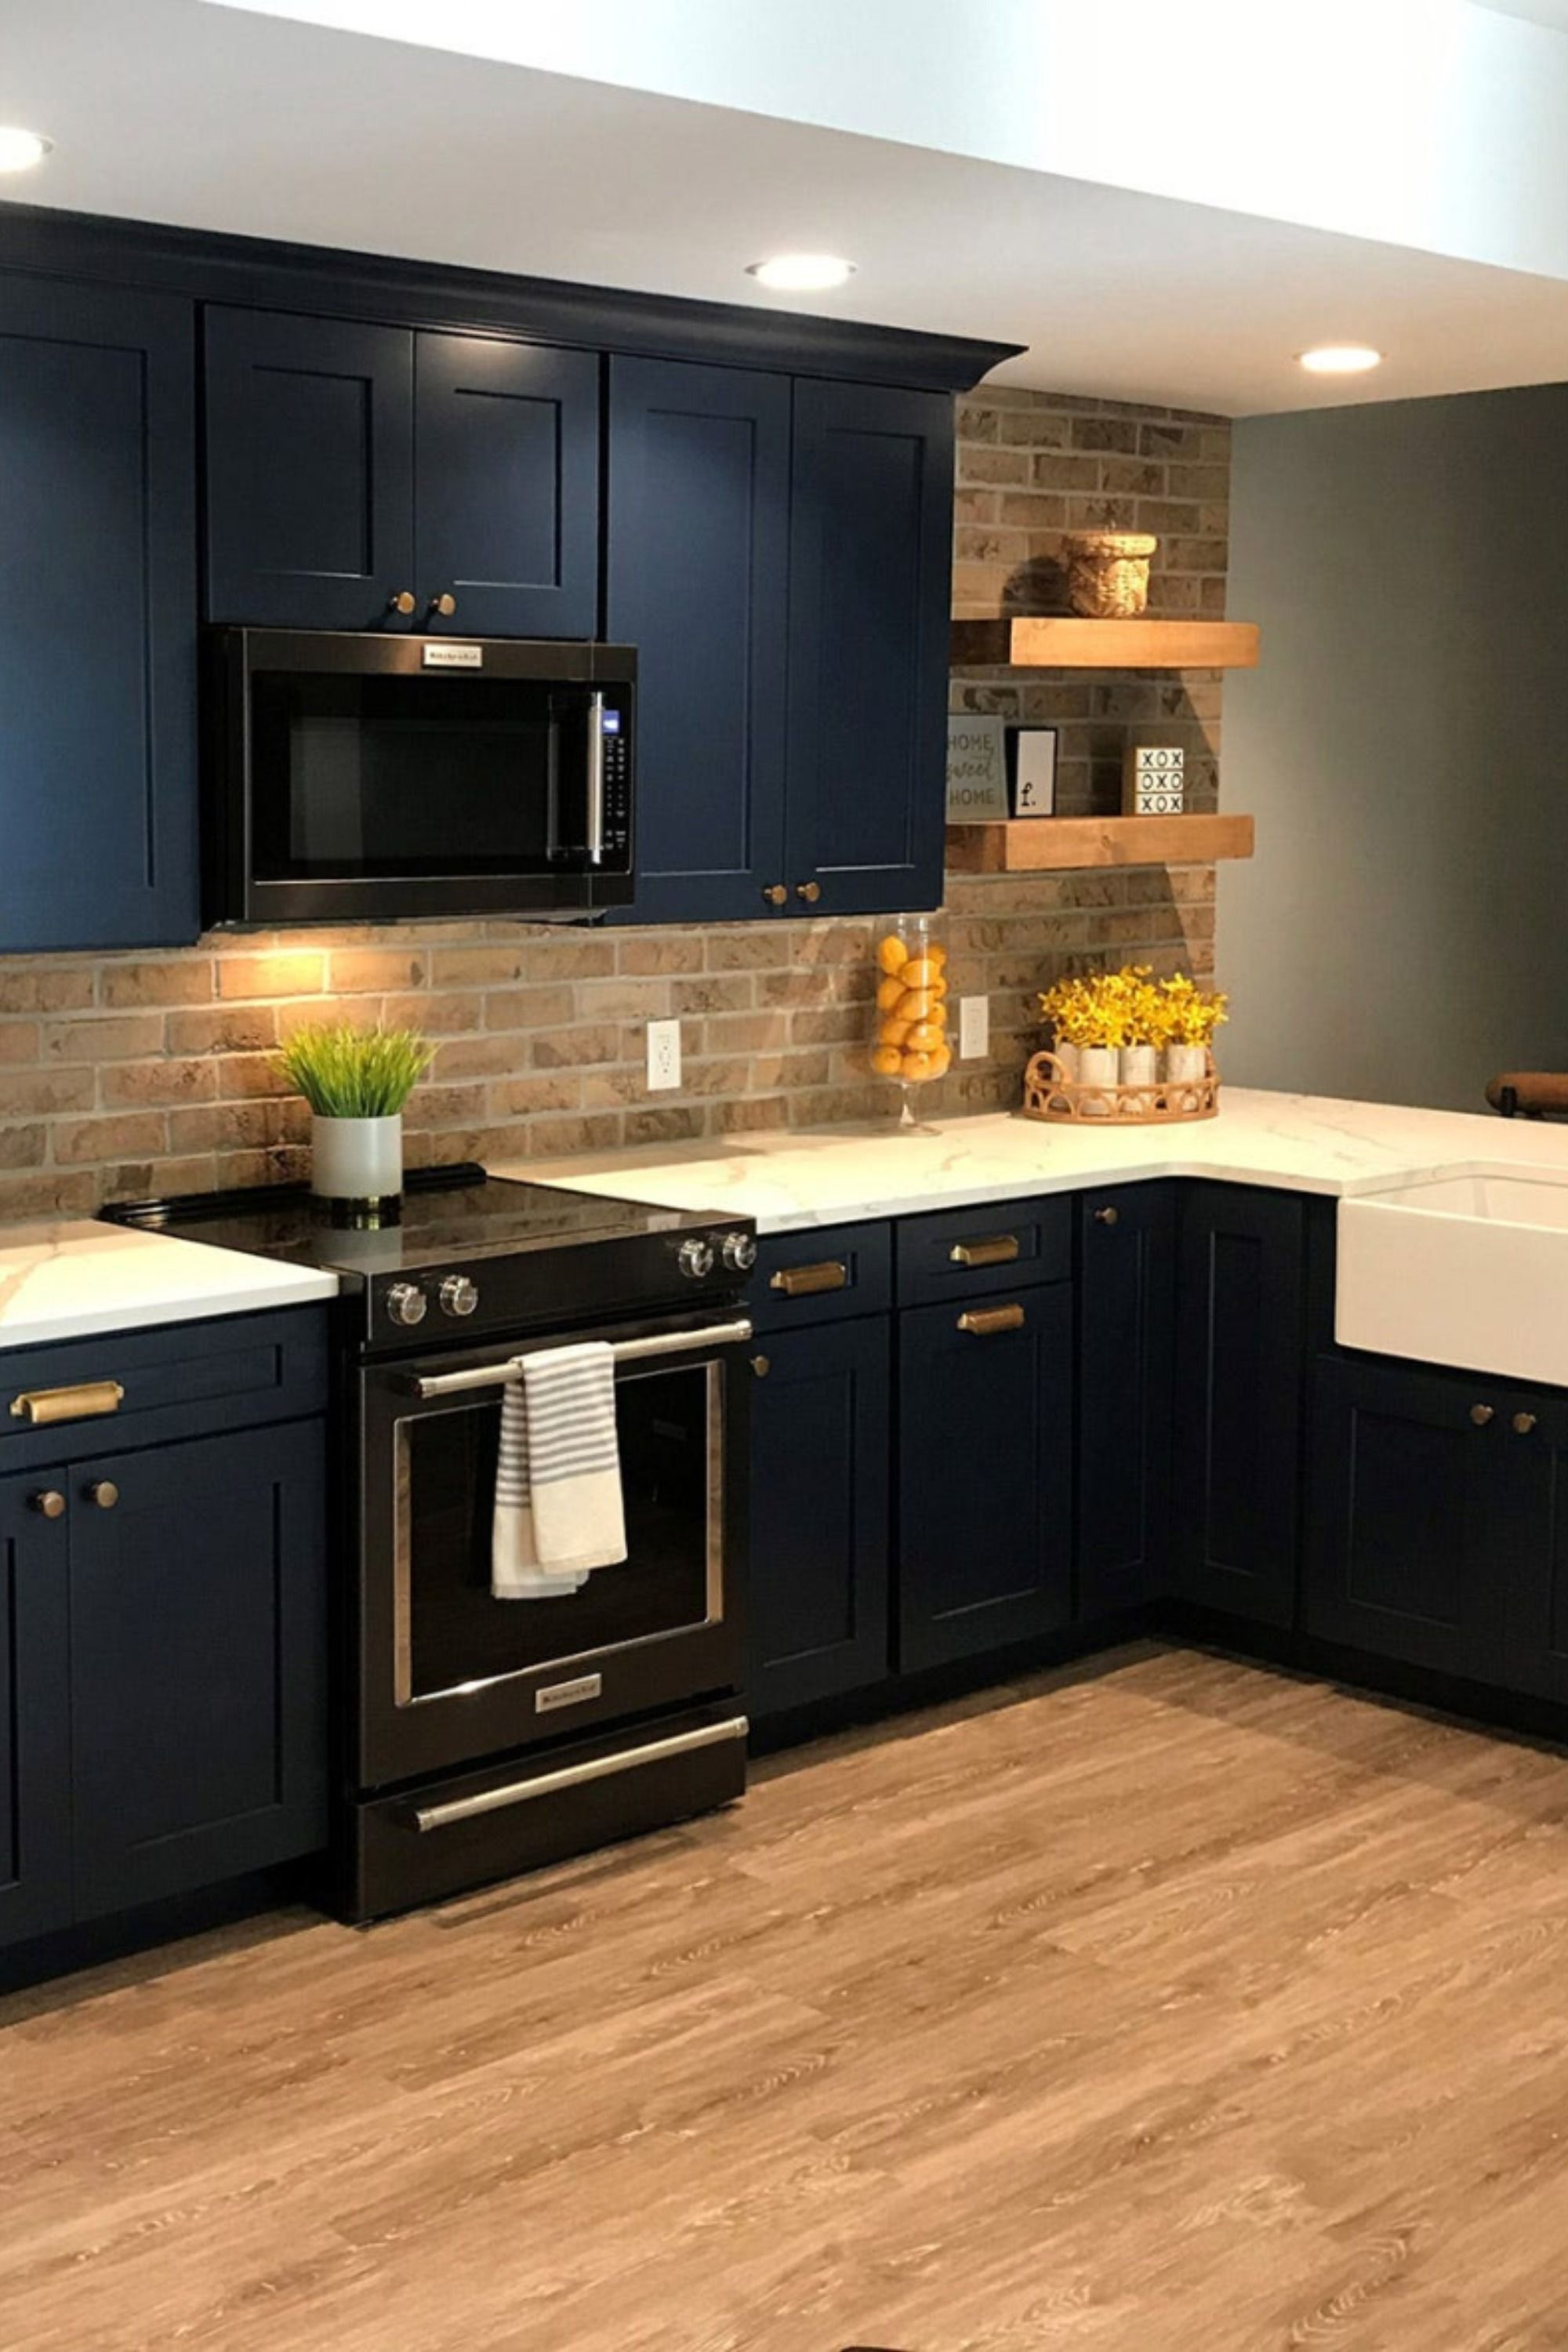 Navy Cabinets With Stainless Black Appliances In 2020 Kitchen Cabinets With Black Appliances Black Appliances Kitchen Black Kitchen Cabinets